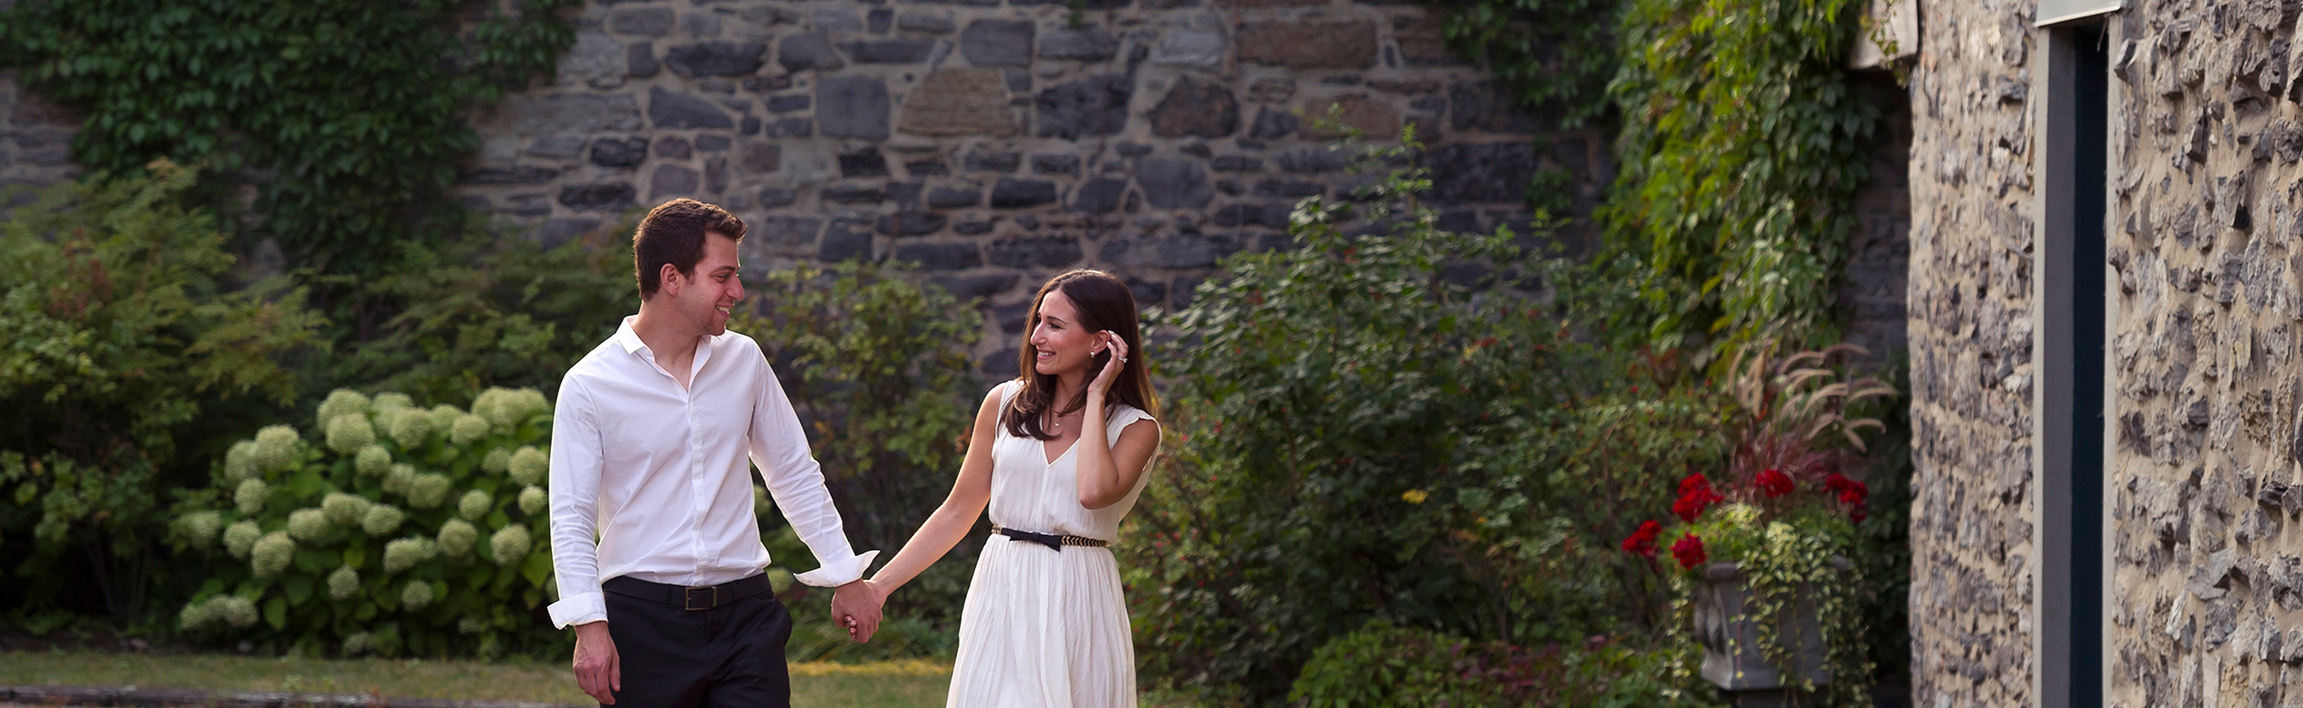 Montreal Engagement Photographer Videographer   Vieux Port   Old Montreal   Lindsay Muciy Photography  